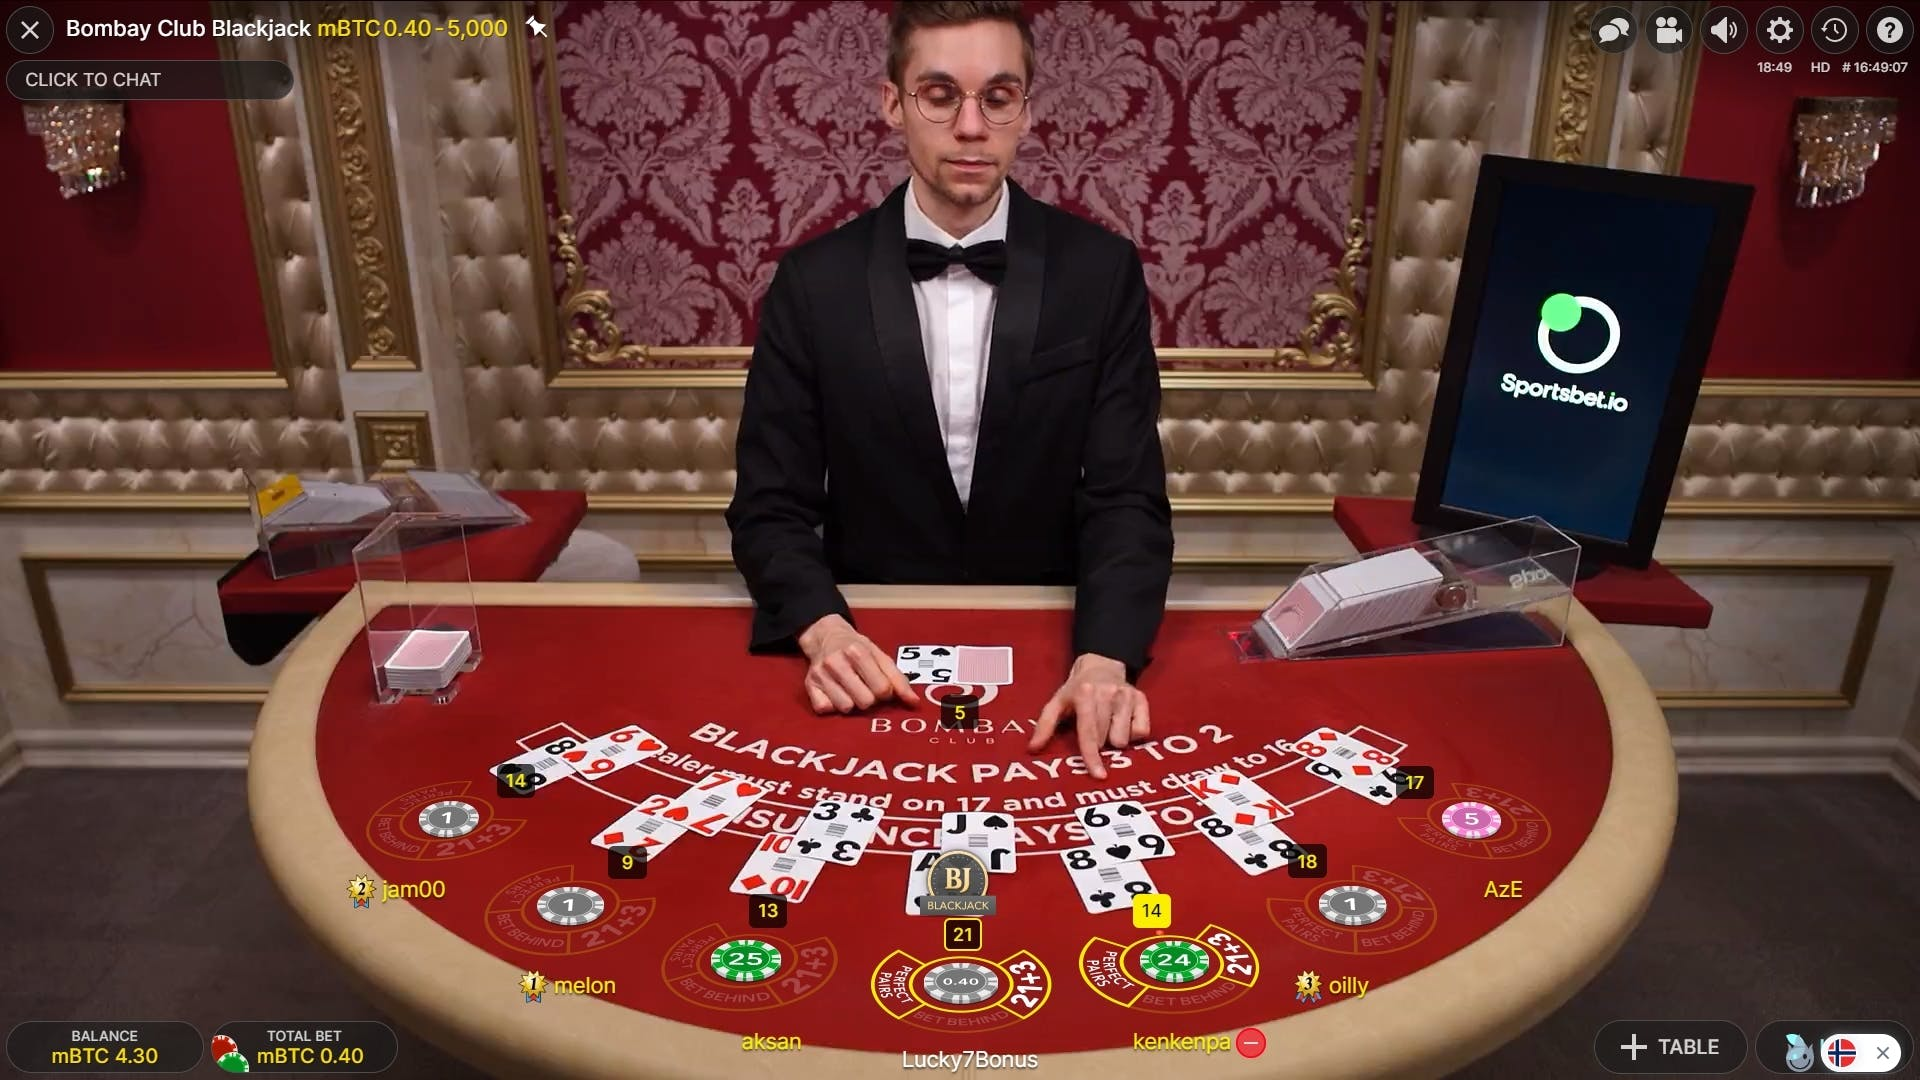 In this example, Lucky7Bonus gets a blackjack with a jack and an as.